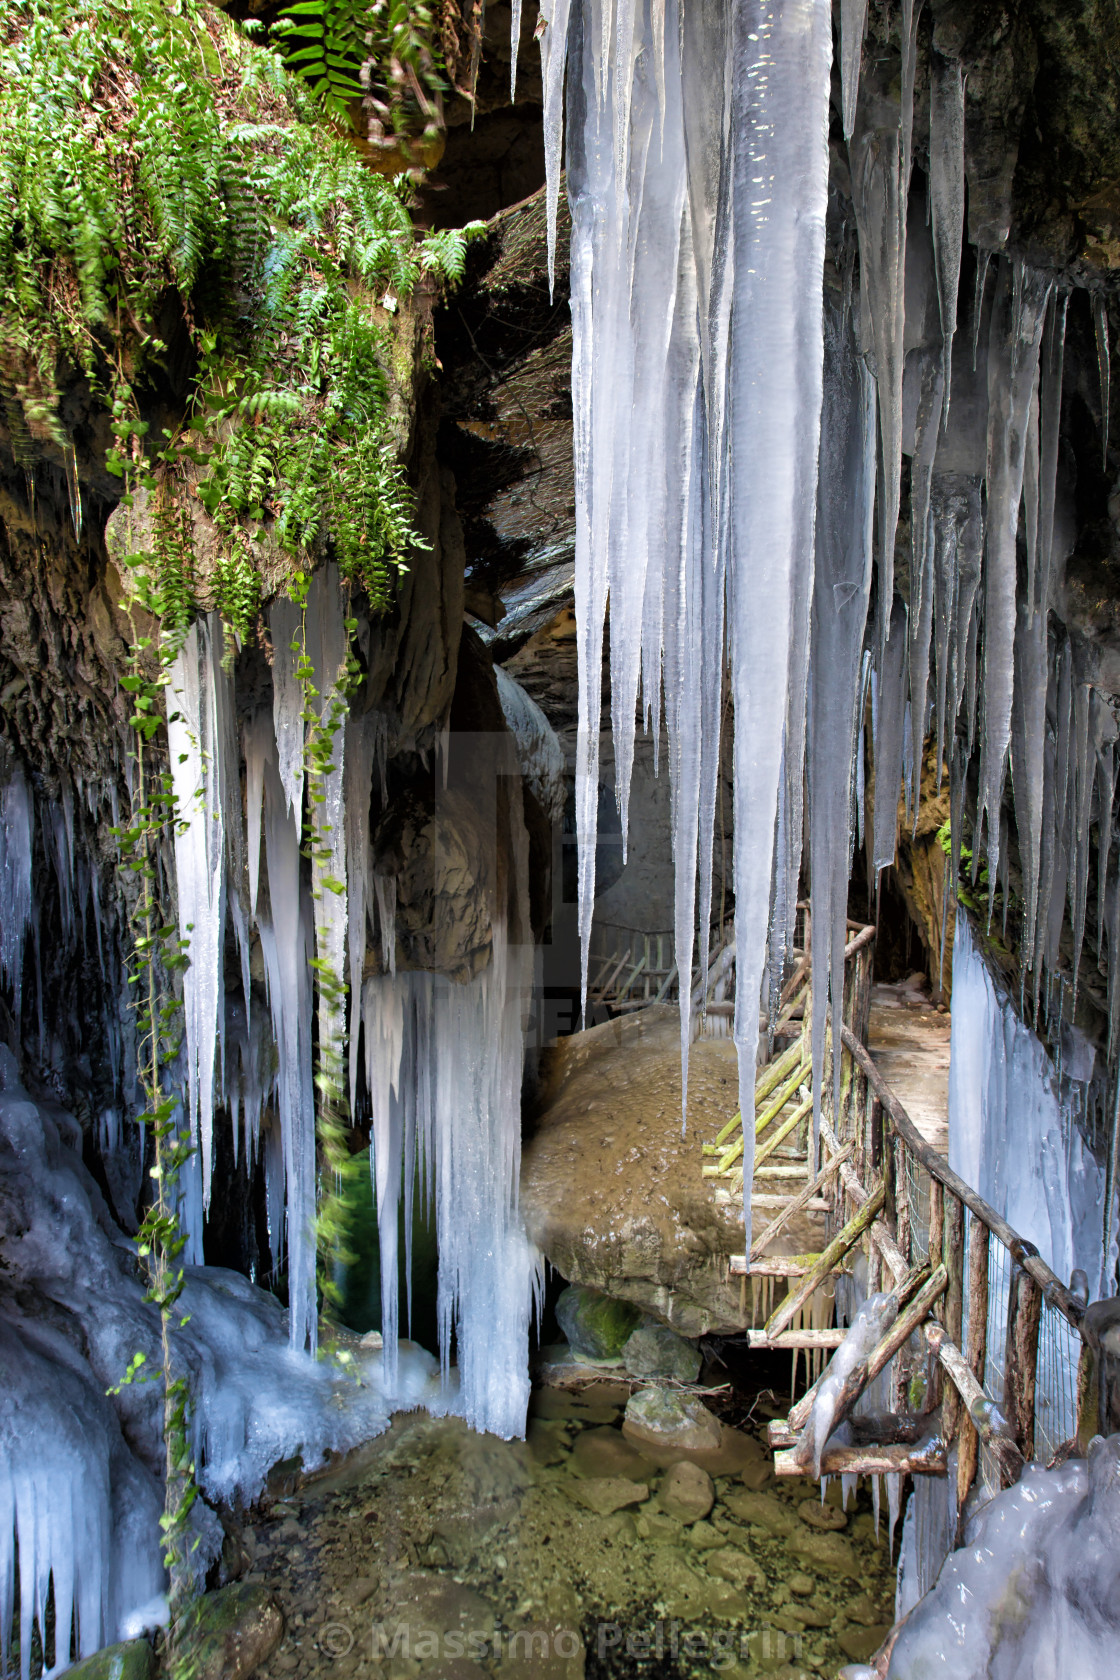 """View of stalactites and stalagmites of ice at the entrance of a cave"" stock image"